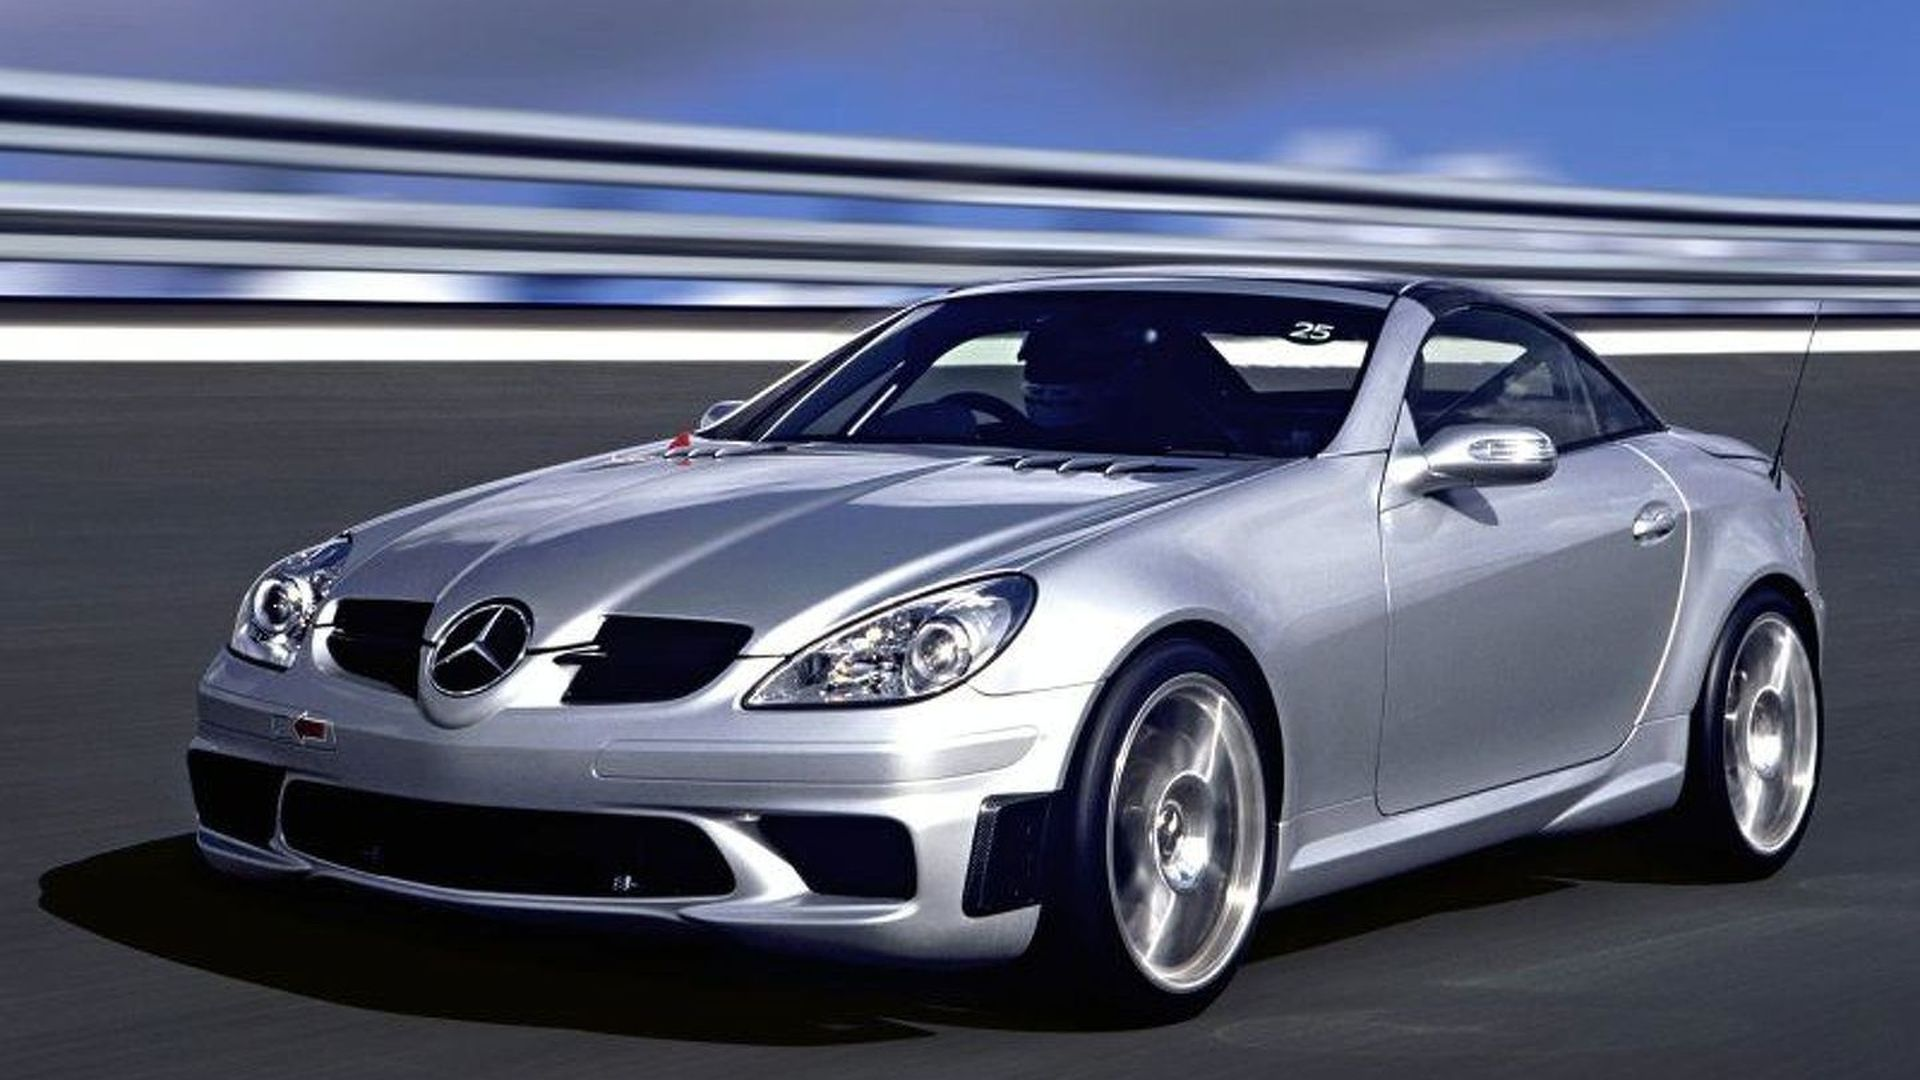 newest cars in 2006 - HD1920×1080